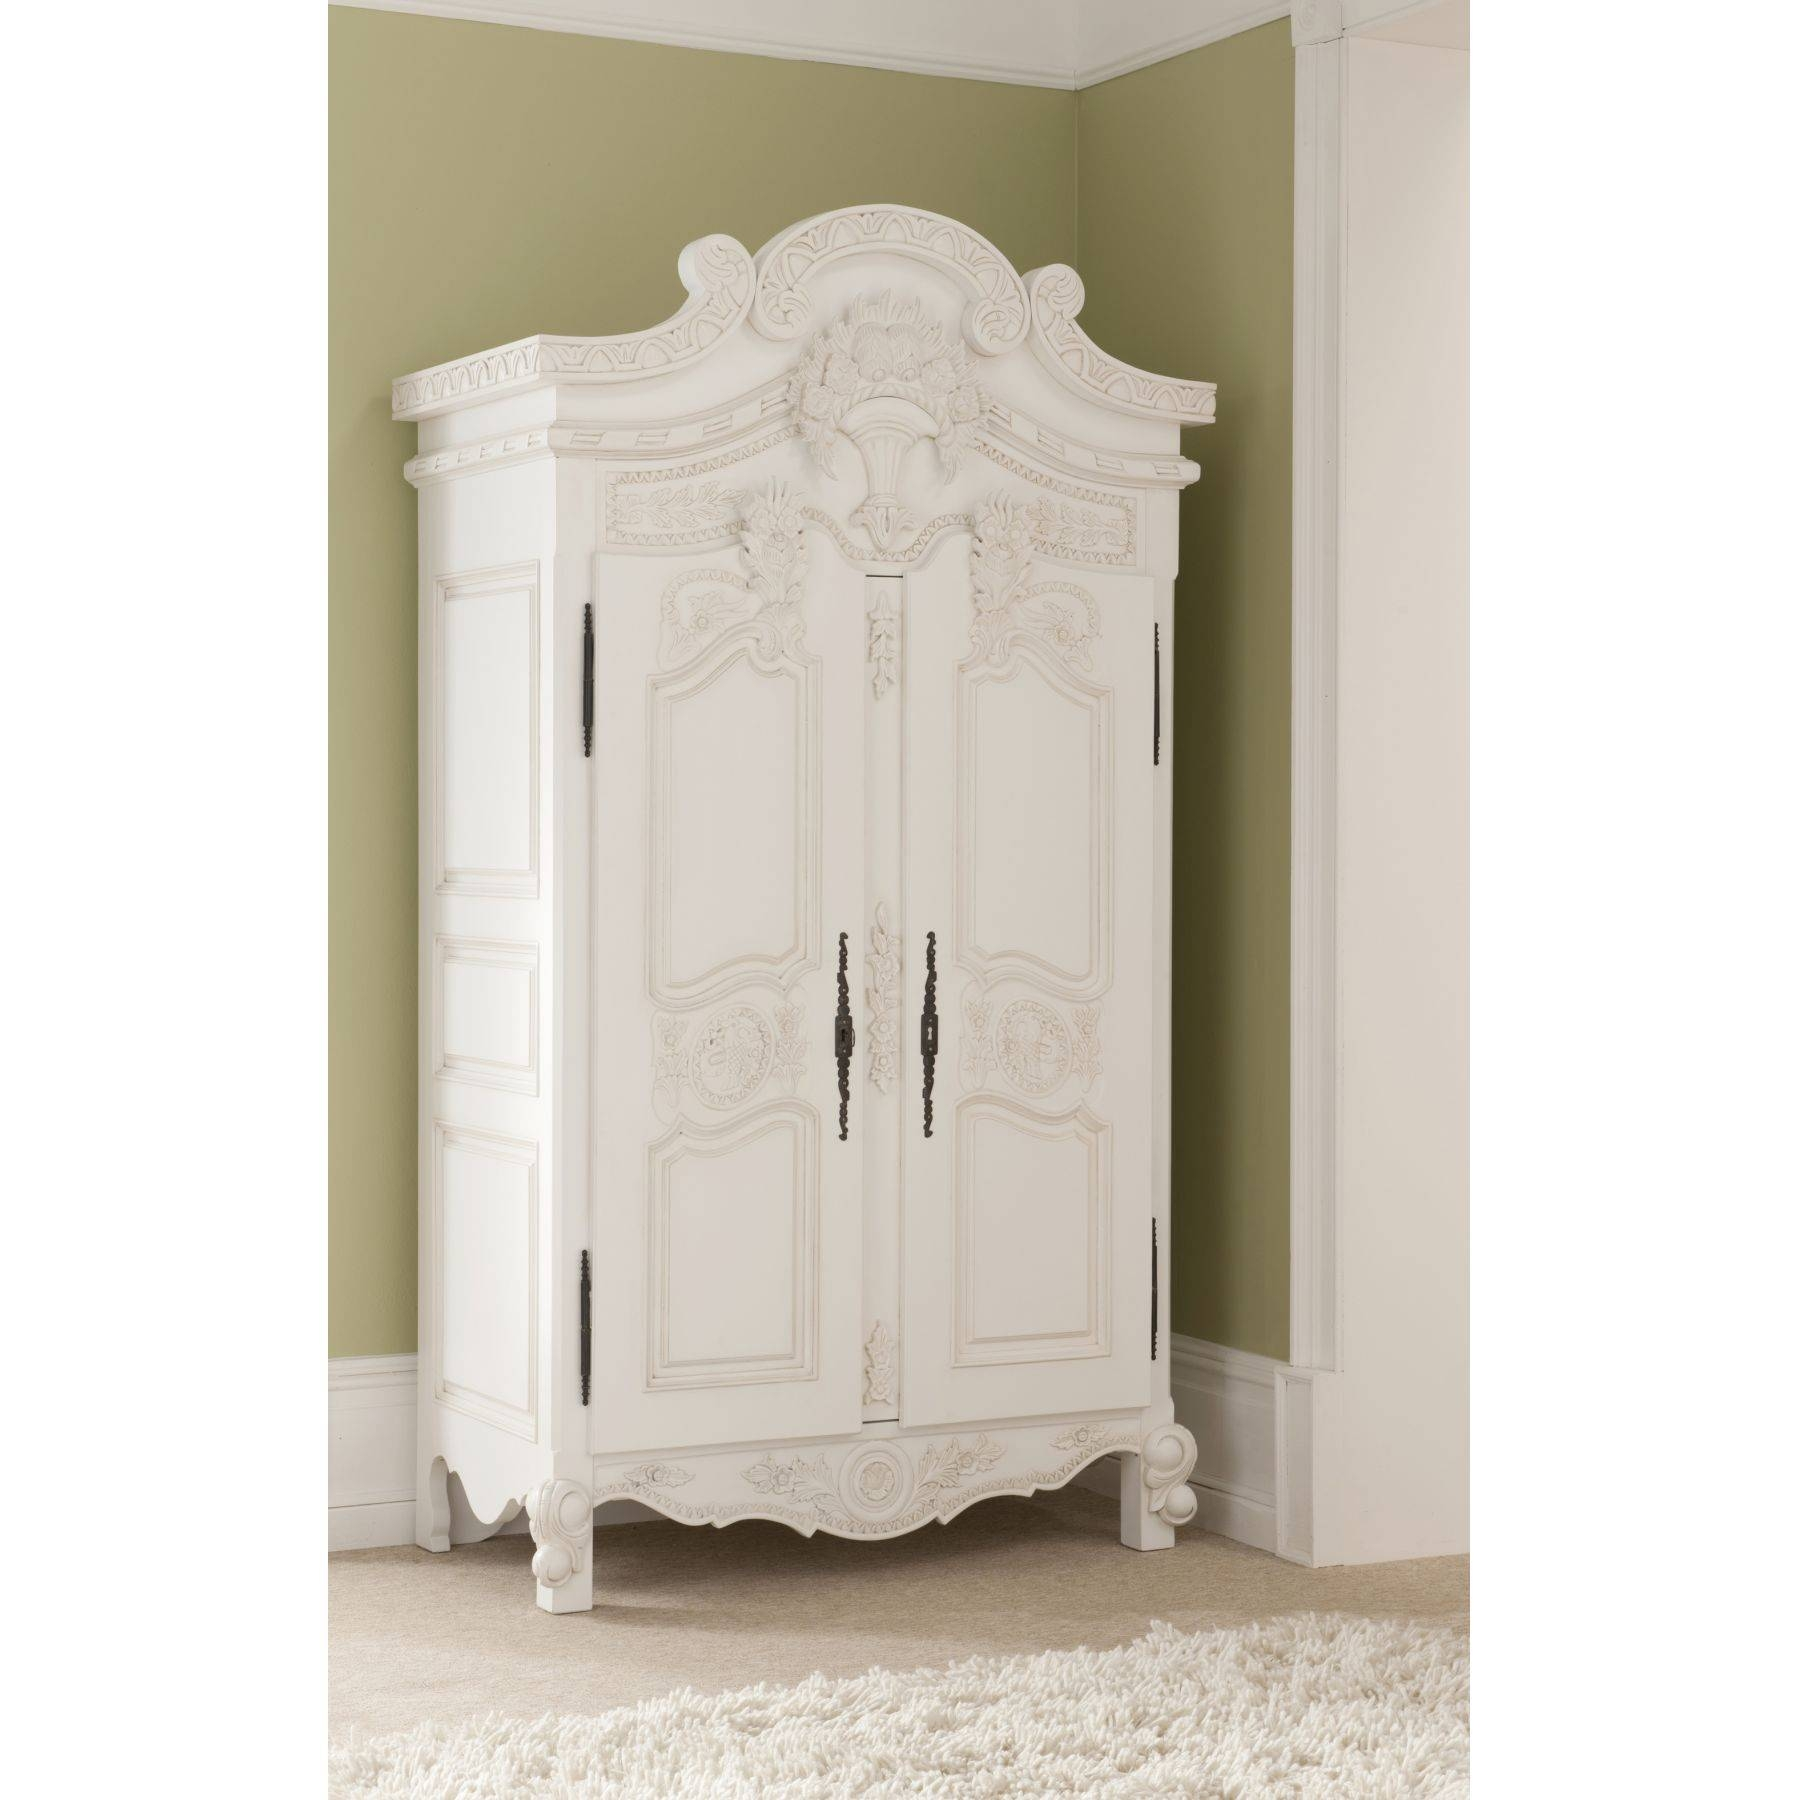 Rococo Antique French Bed (Size: Single) + Roccoco Antique French Inside Small Tallboy Wardrobes (View 11 of 15)